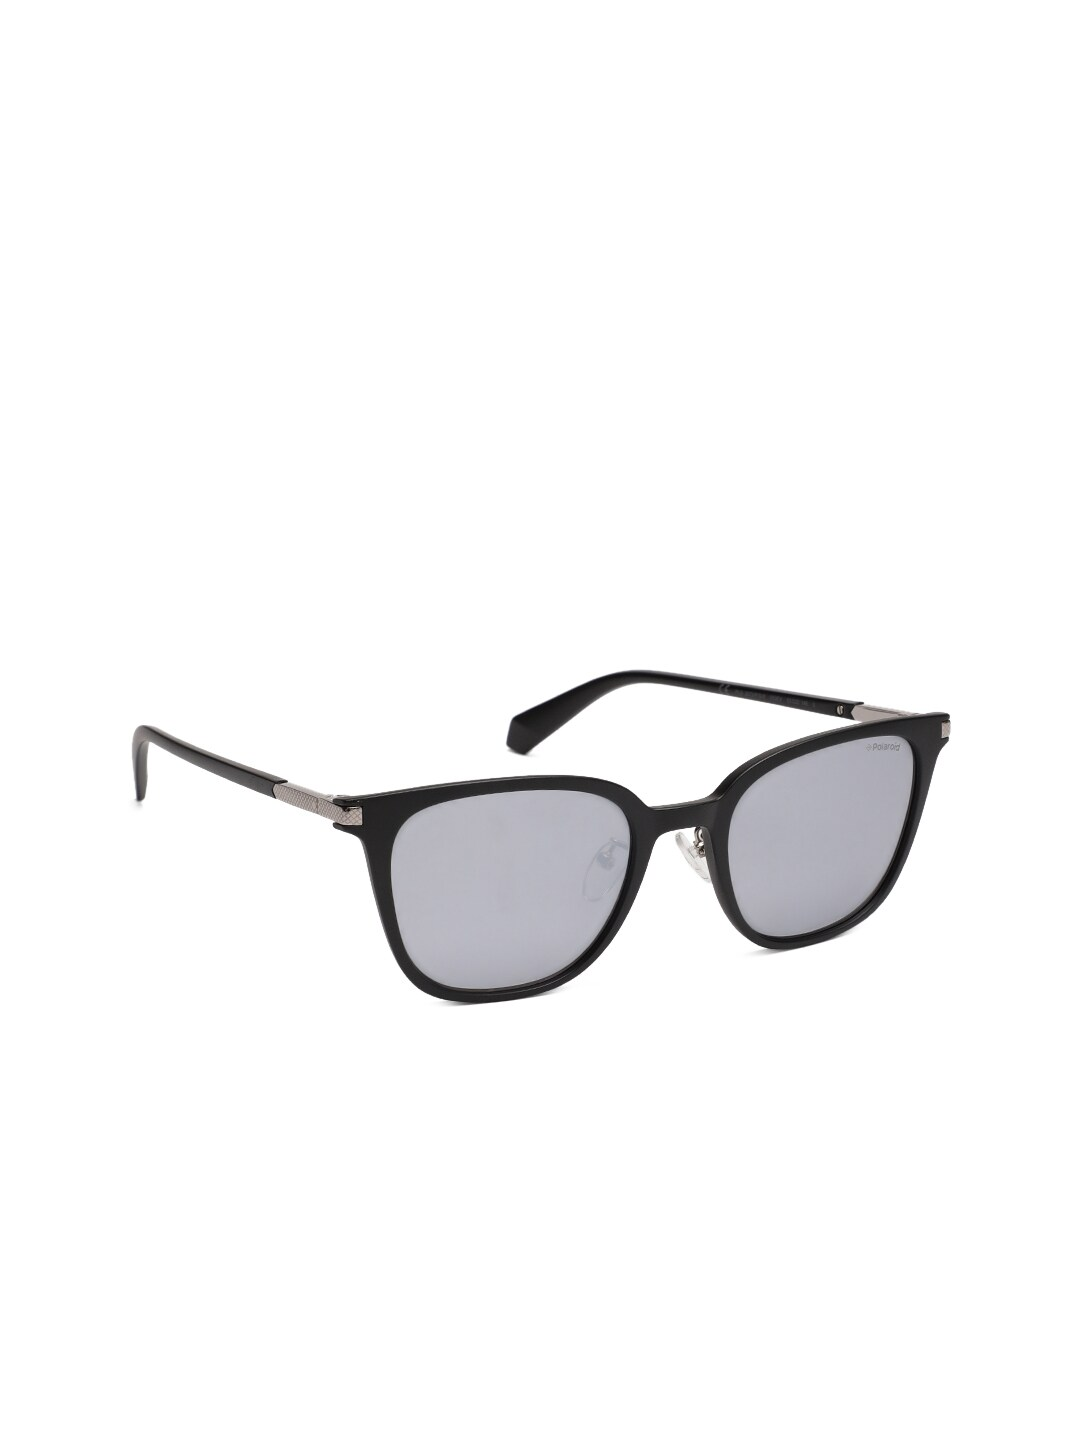 42f4aab4a1c S Palm Sunglasses Skirts - Buy S Palm Sunglasses Skirts online in India